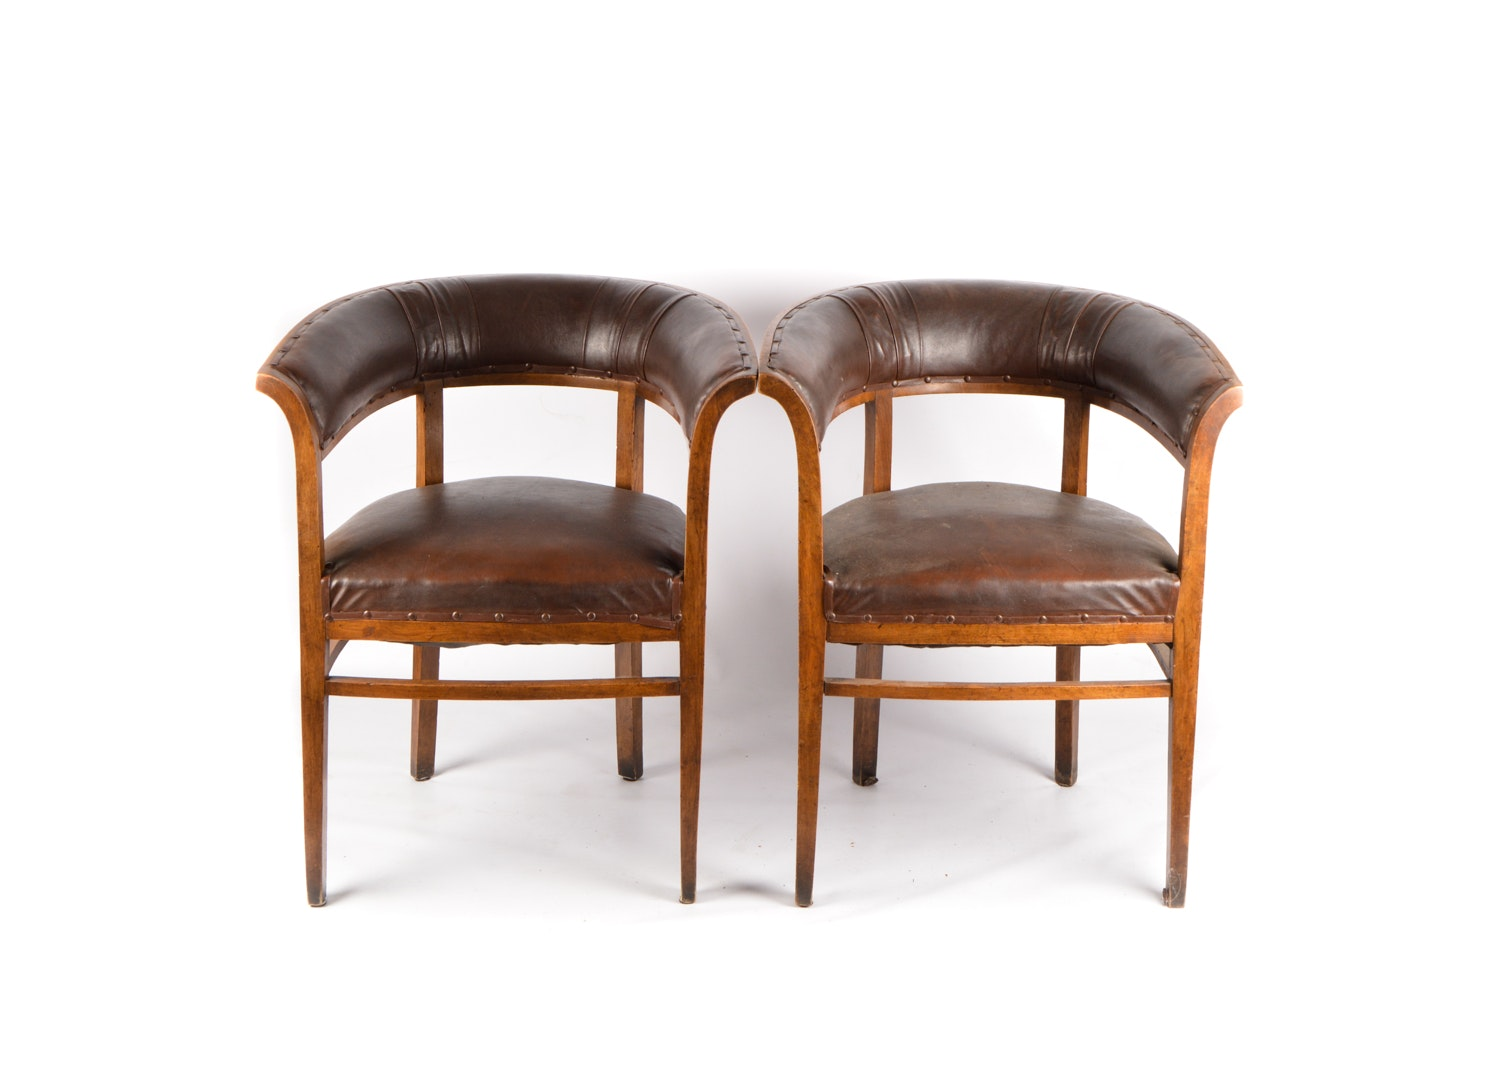 Leather and Wood Curved Back Club Chair Pair, 20th Century